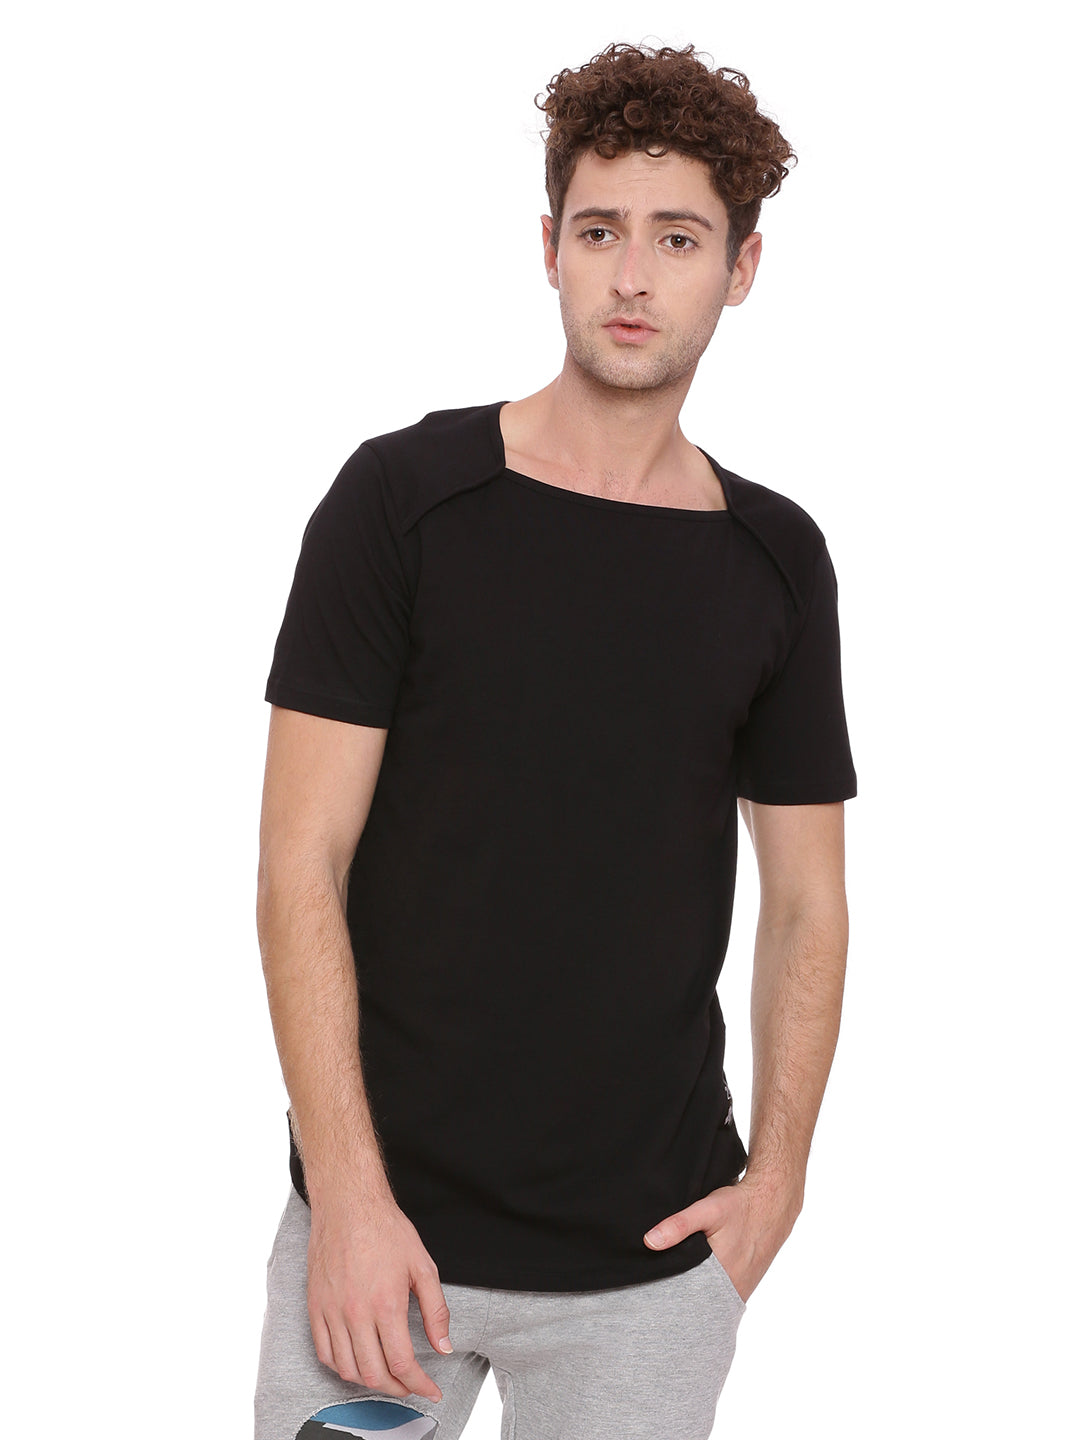 Square Neck T-shirt with neck binding